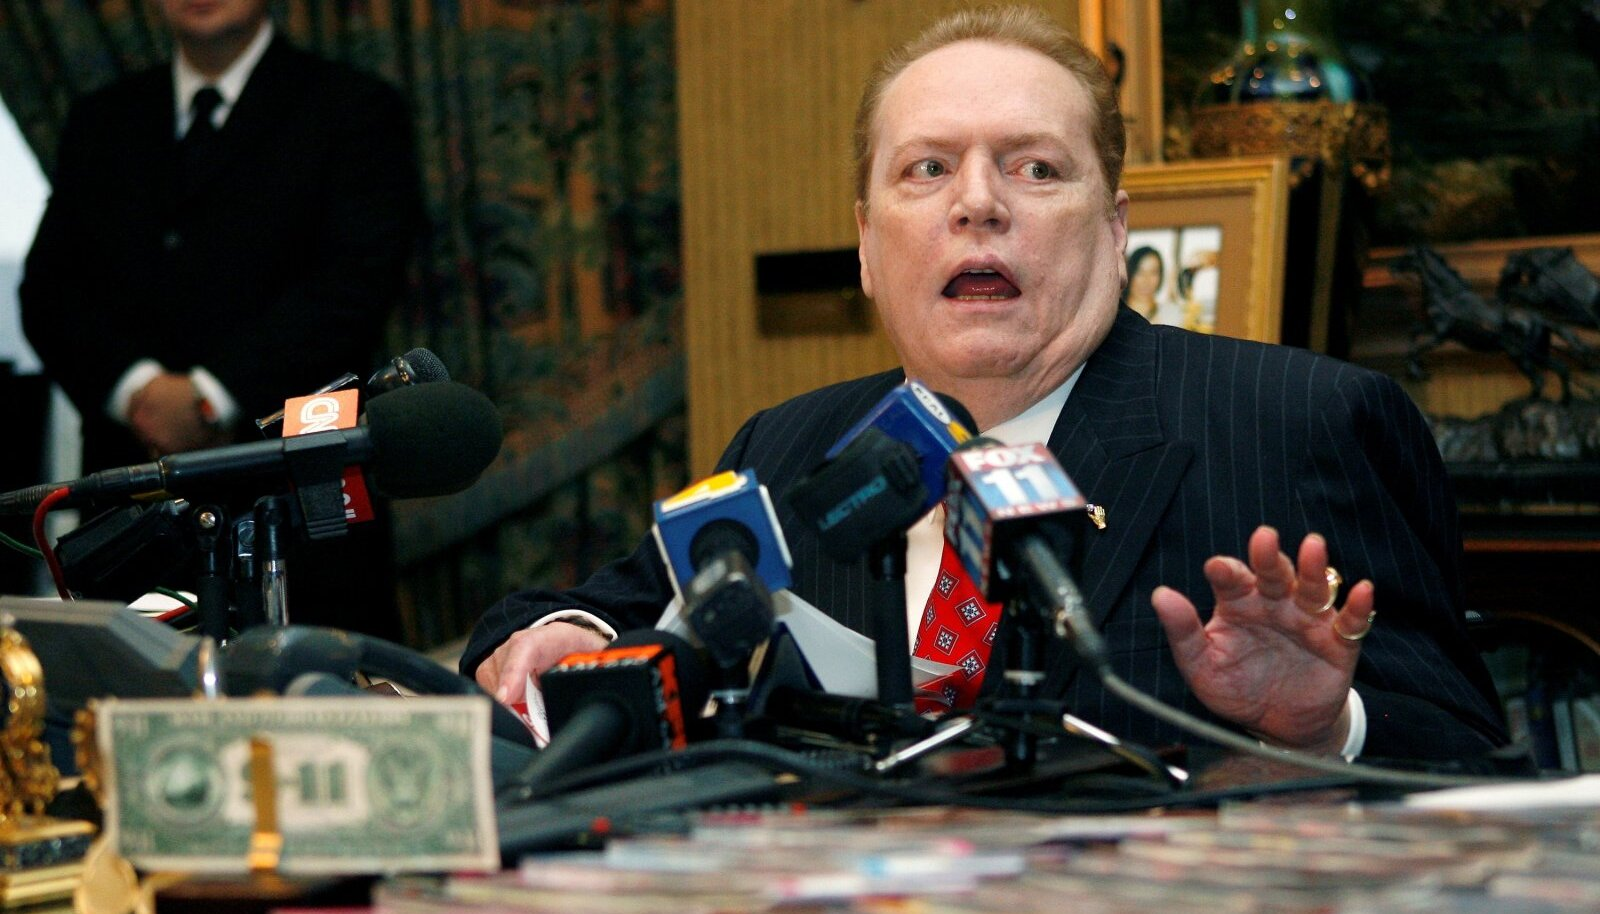 """FILE PHOTO: Larry Flynt, head of Larry Flynt Publications, speaks to the media about the """"D.C. Madam"""" sex scandal during news conference  in Beverly Hills"""